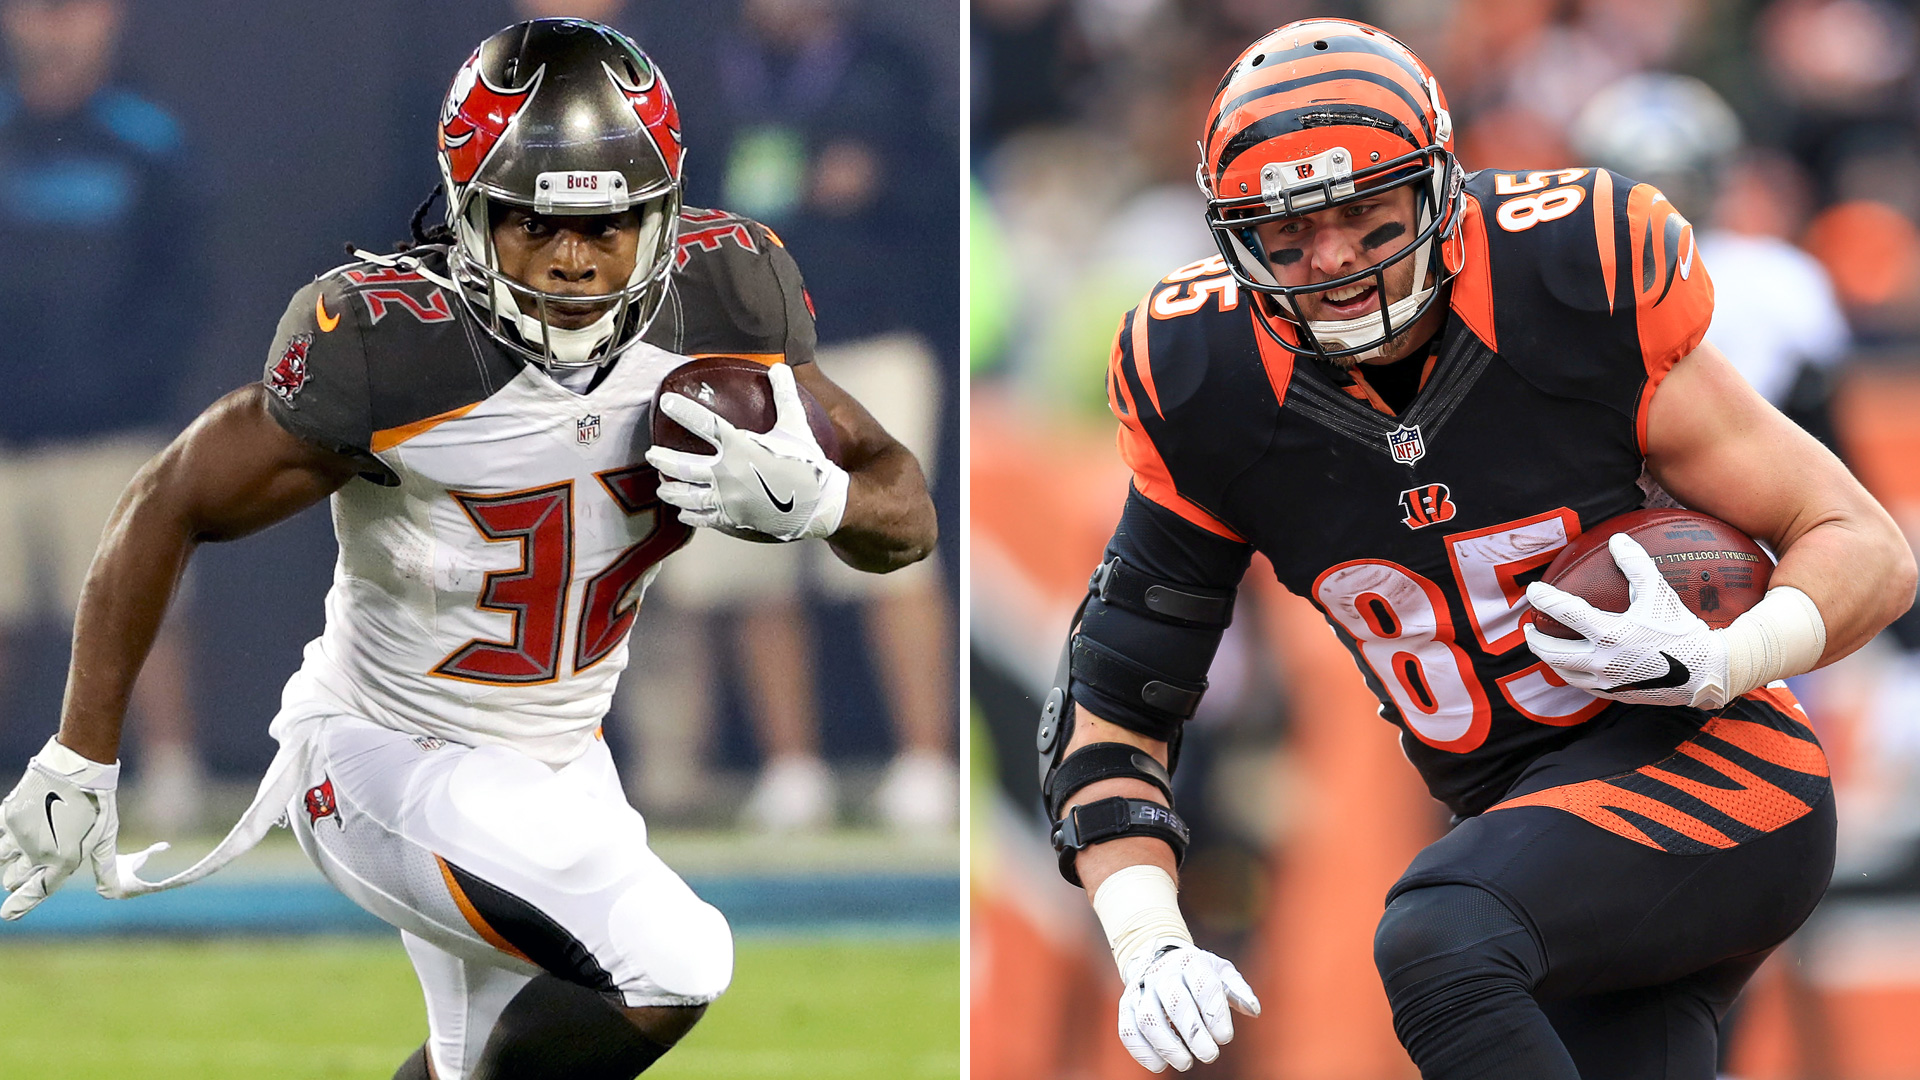 Week 7 Fantasy Sleepers Tyler Eifert Jacquizz Rodgers have